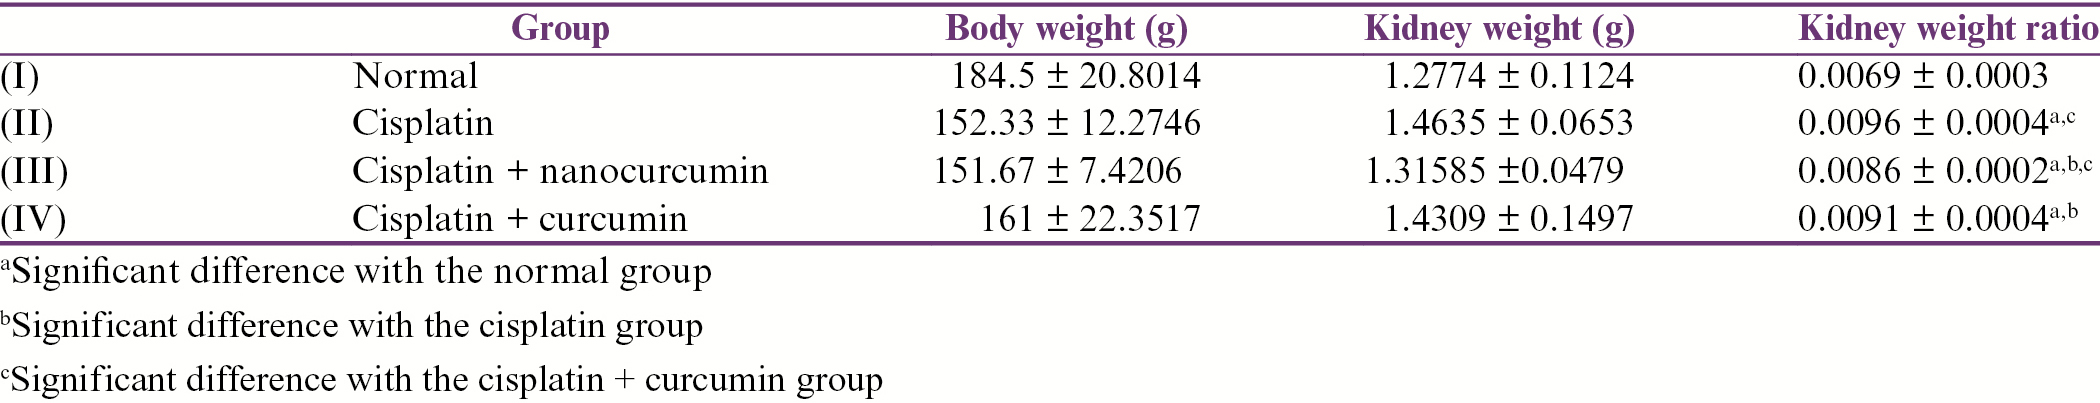 Table 1: Kidney weight ratio